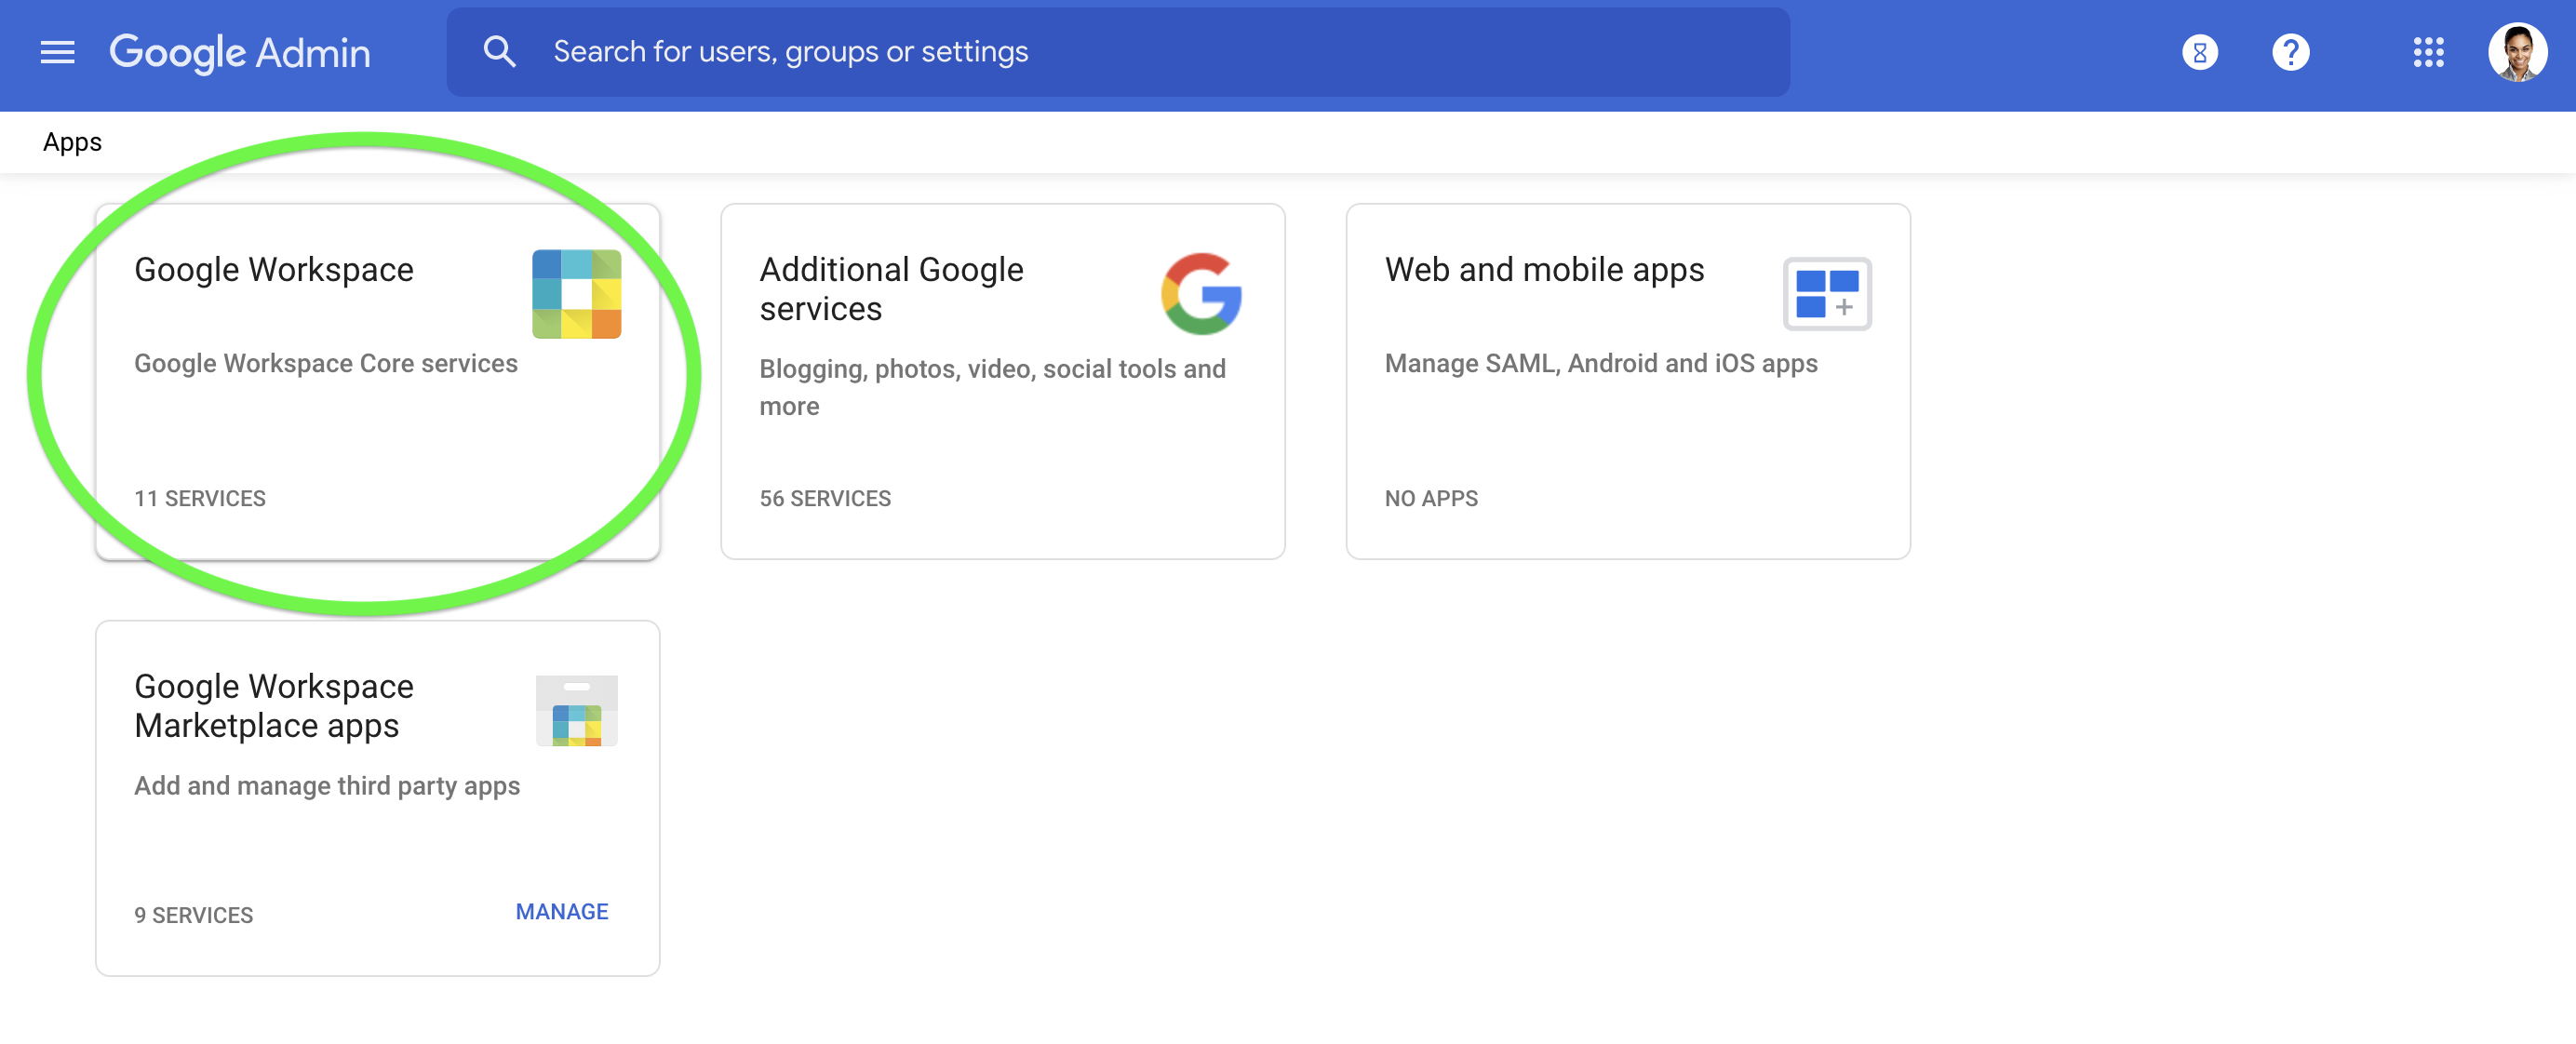 Select Google Workspace to manage your apps